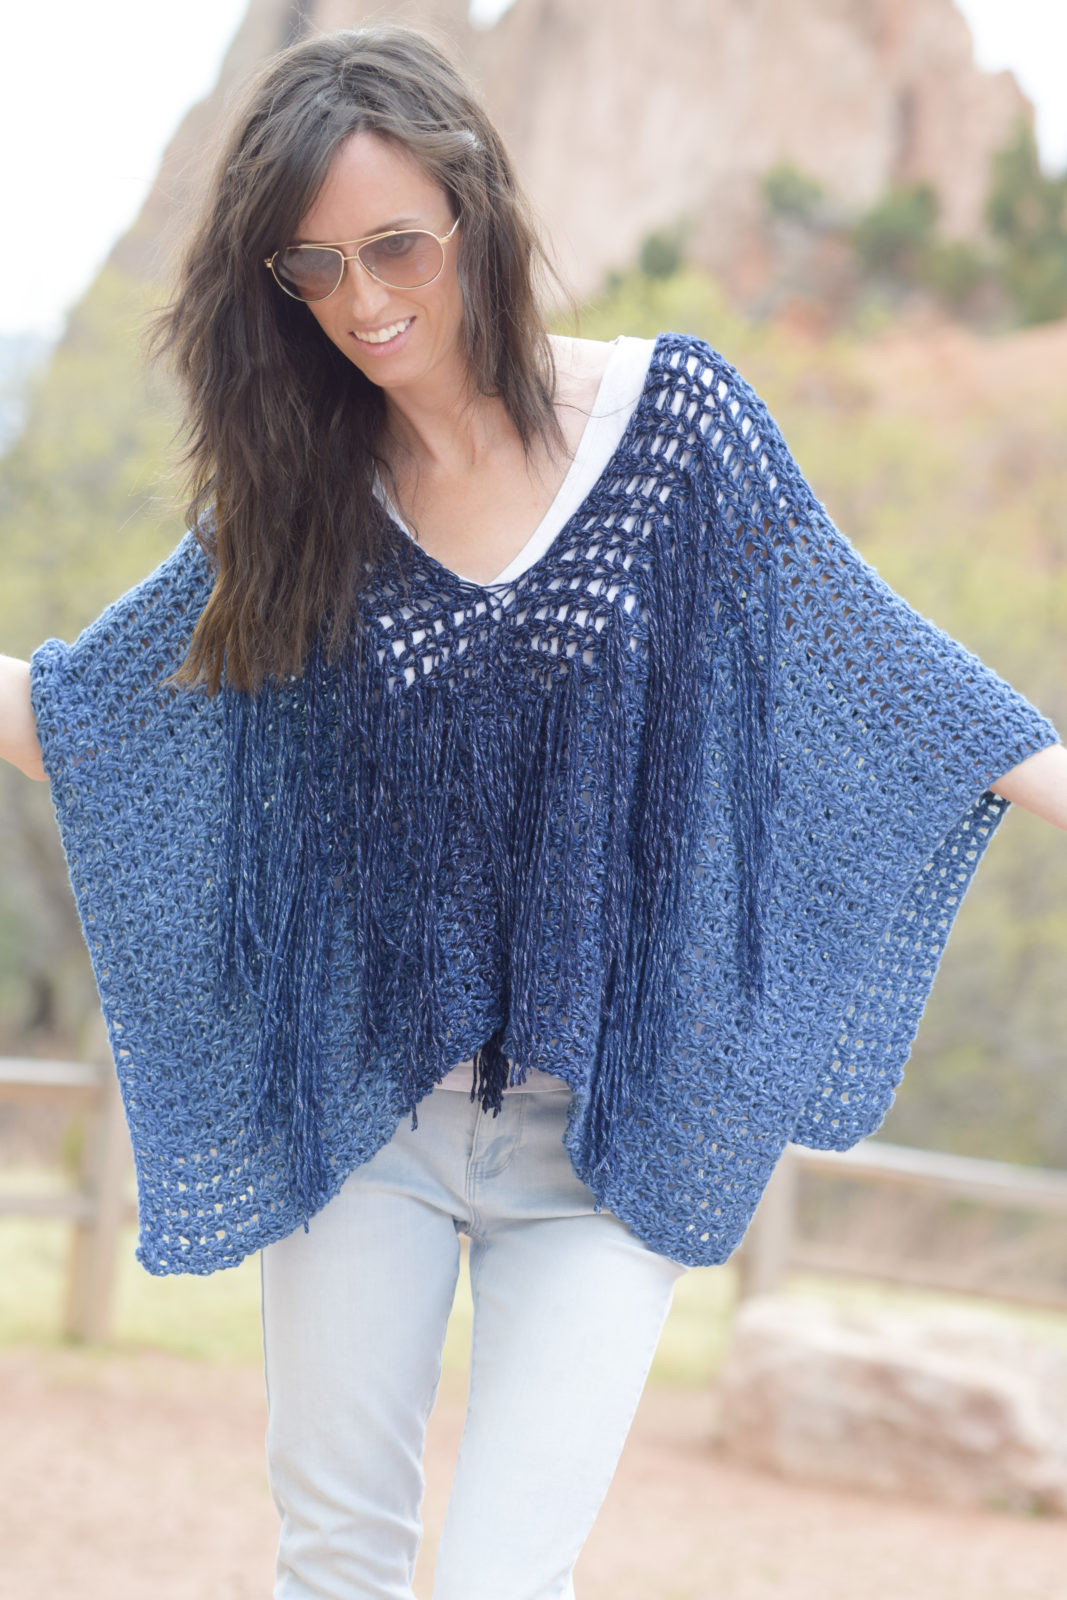 Easy Crochet Poncho Pattern Lovely Azul V Mesh Easy Crochet Poncho Pattern – Mama In A Stitch Of Amazing 43 Pics Easy Crochet Poncho Pattern